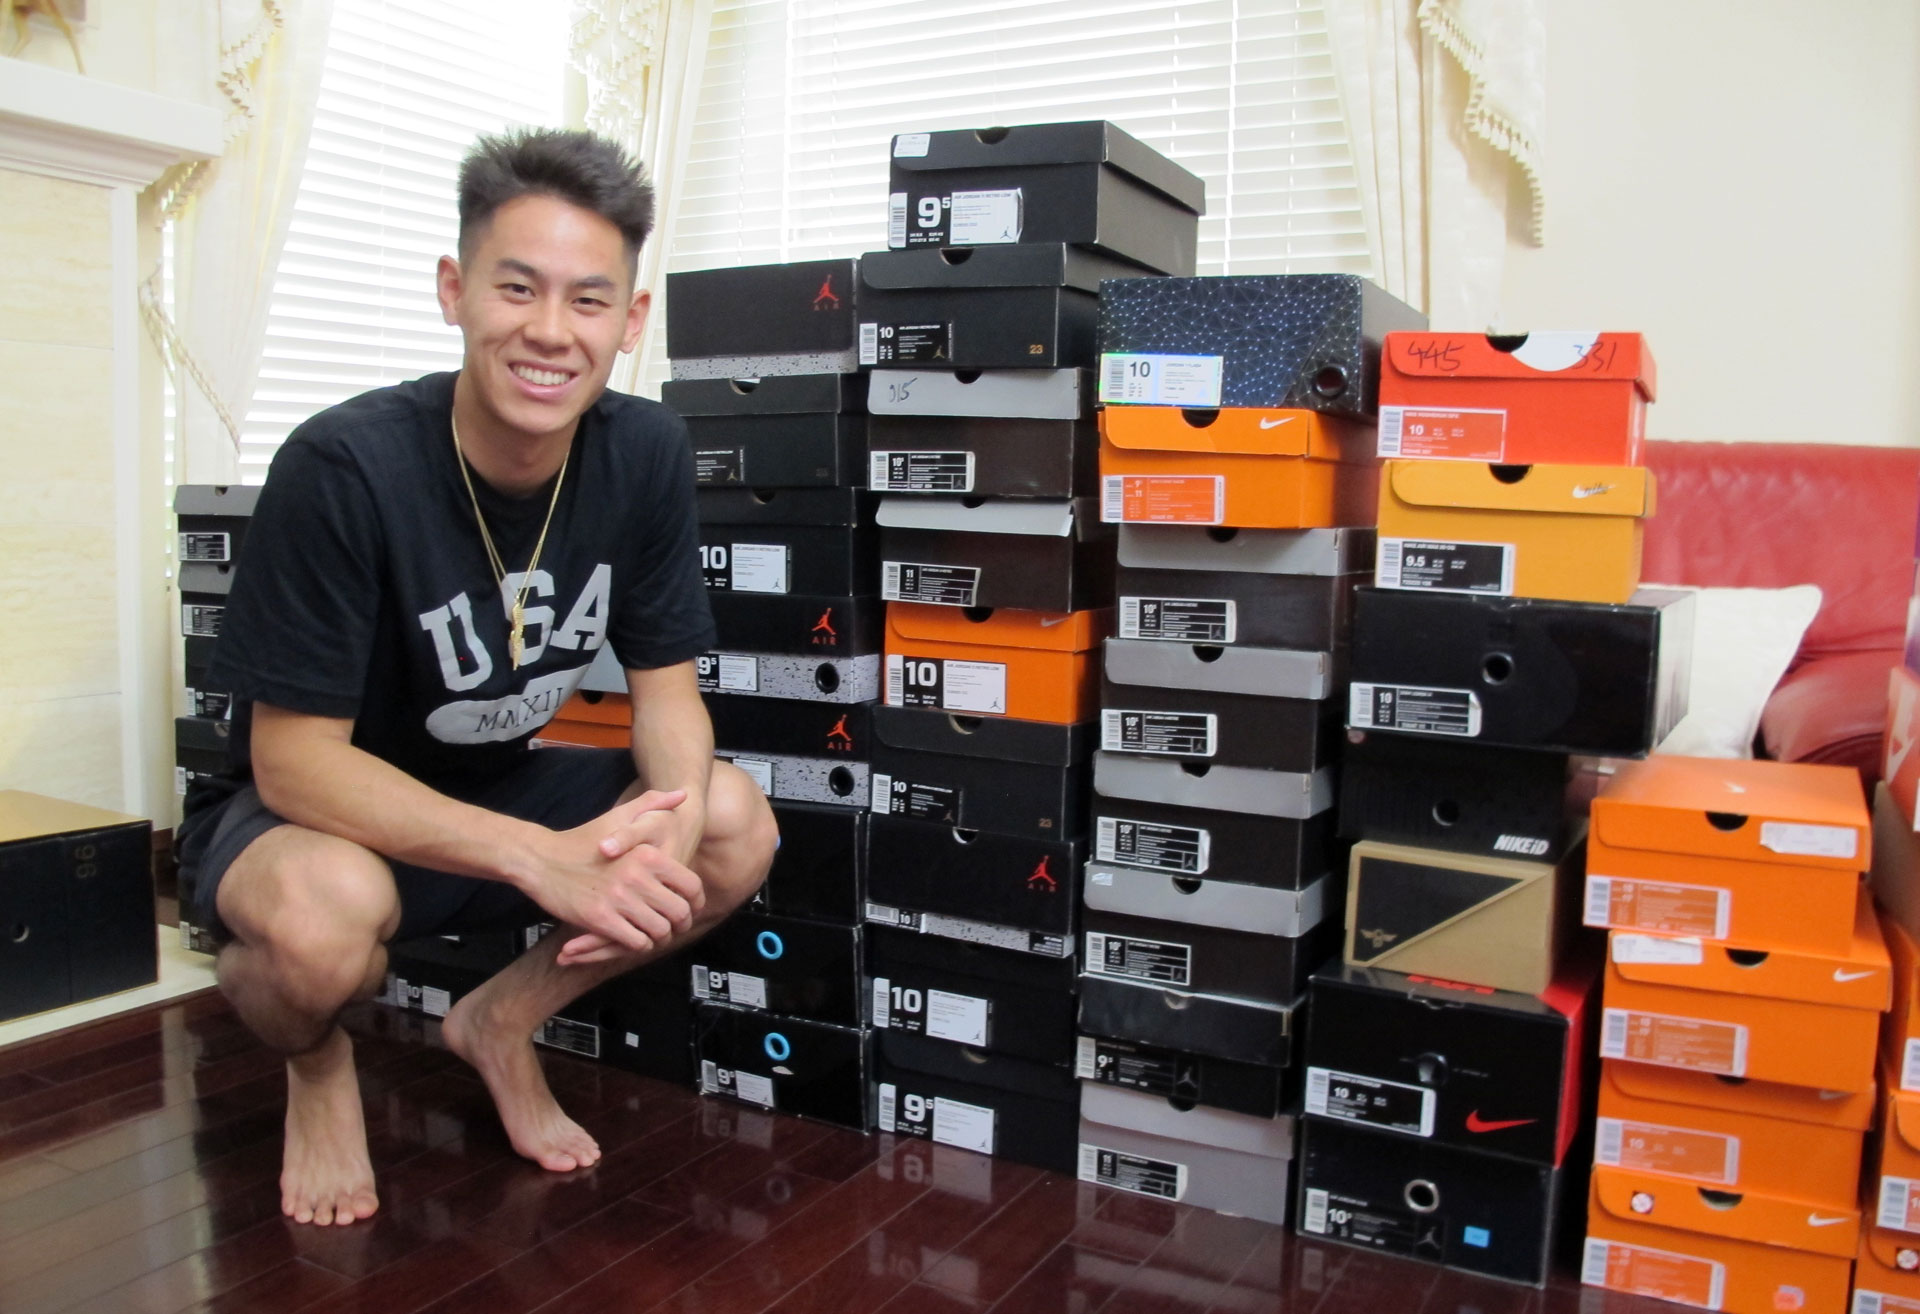 Anaheim's Howard Shu is competing in badminton at this summer's Olympic Games in Rio de Janeiro, Brazil. He's also a shoe collector, with over 100 pairs.